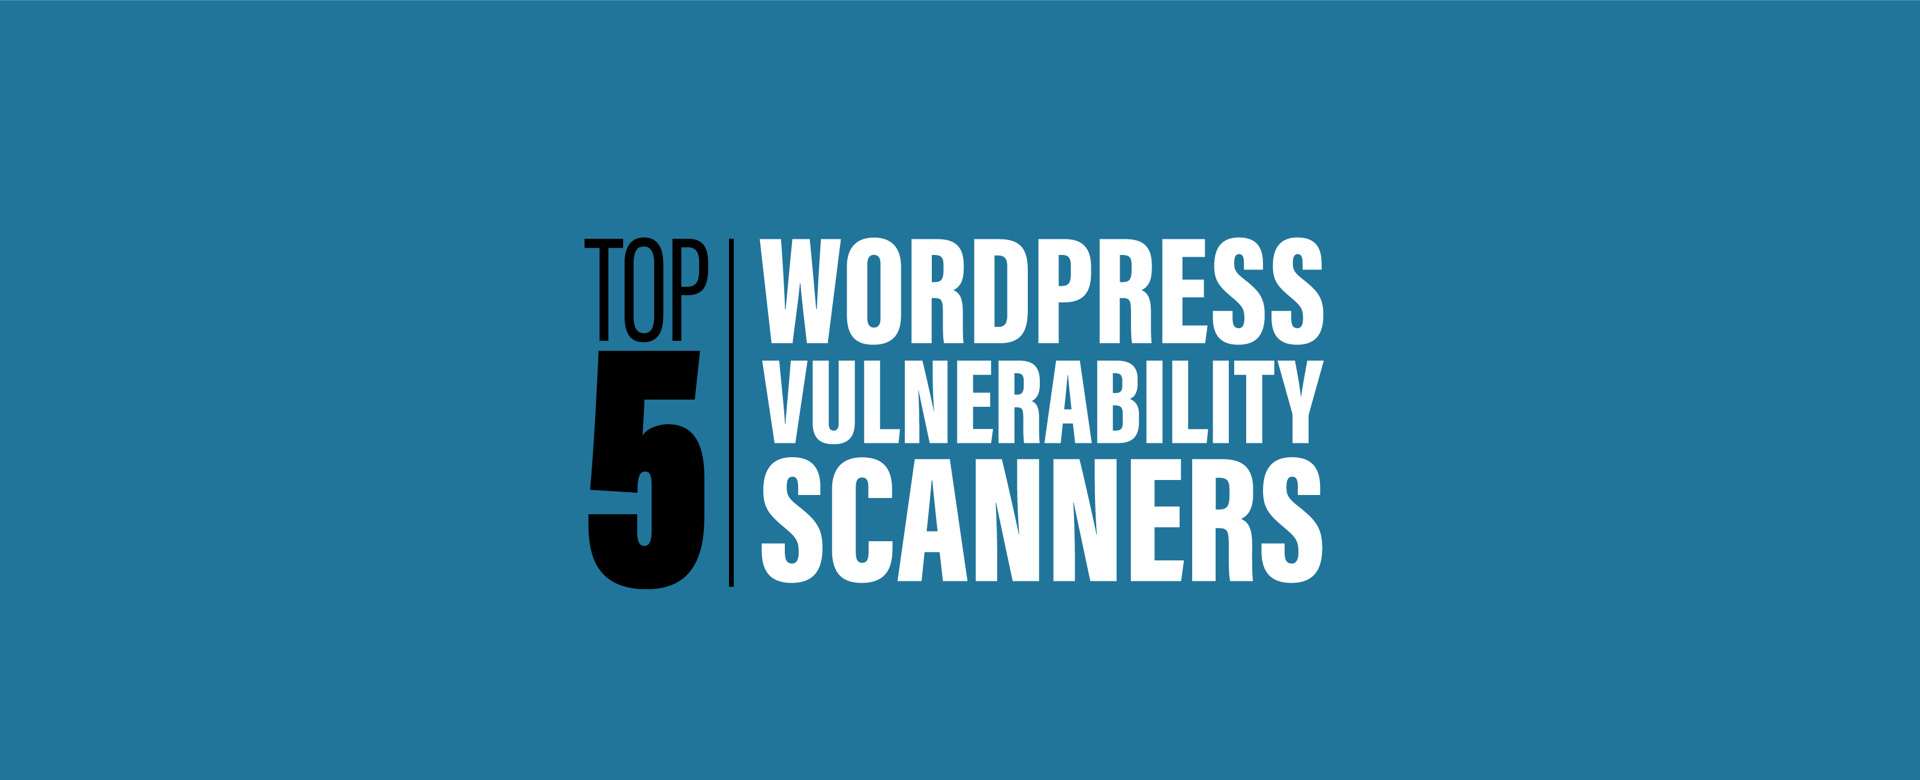 Top 5 Wordpress Vulnerability Scanners